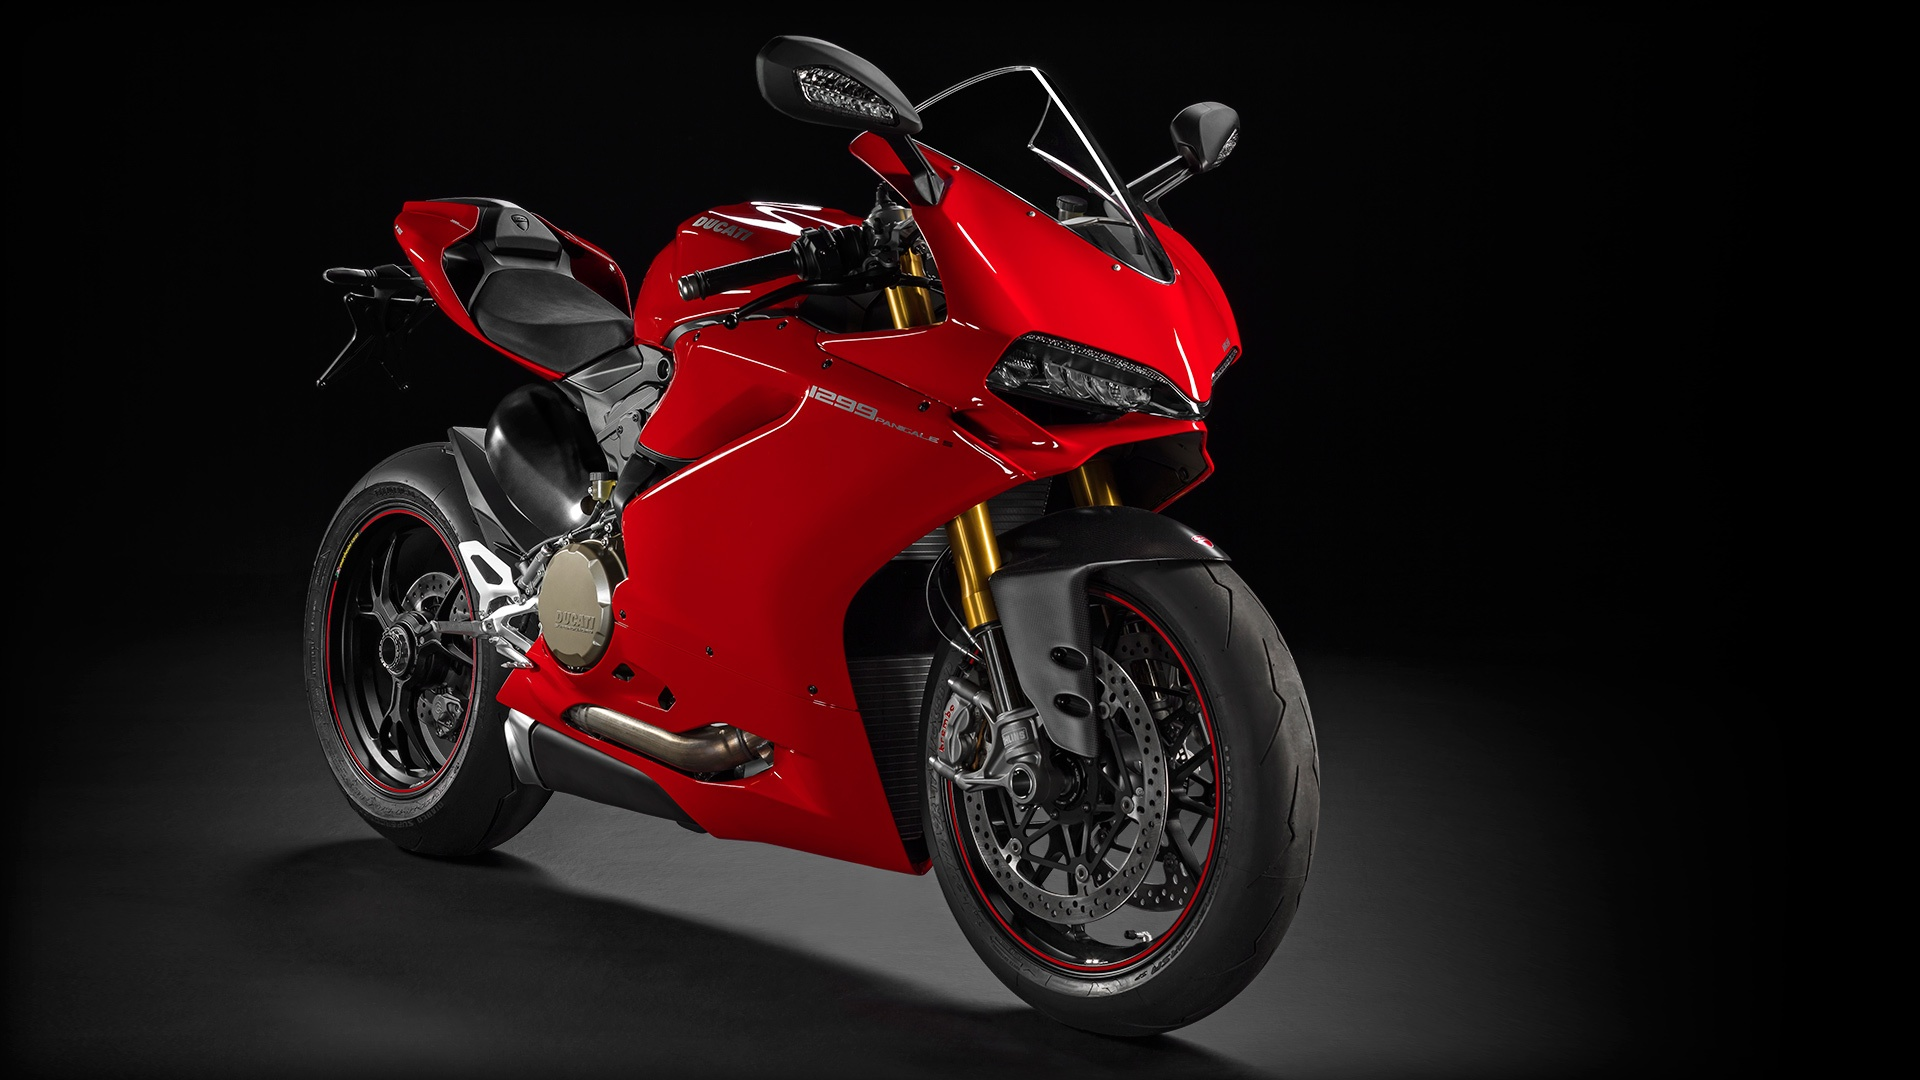 SBK-1299-Panigale-S_2015_Studio_R_B01_1920x1080_mediagallery_output_image_[1920x1080]